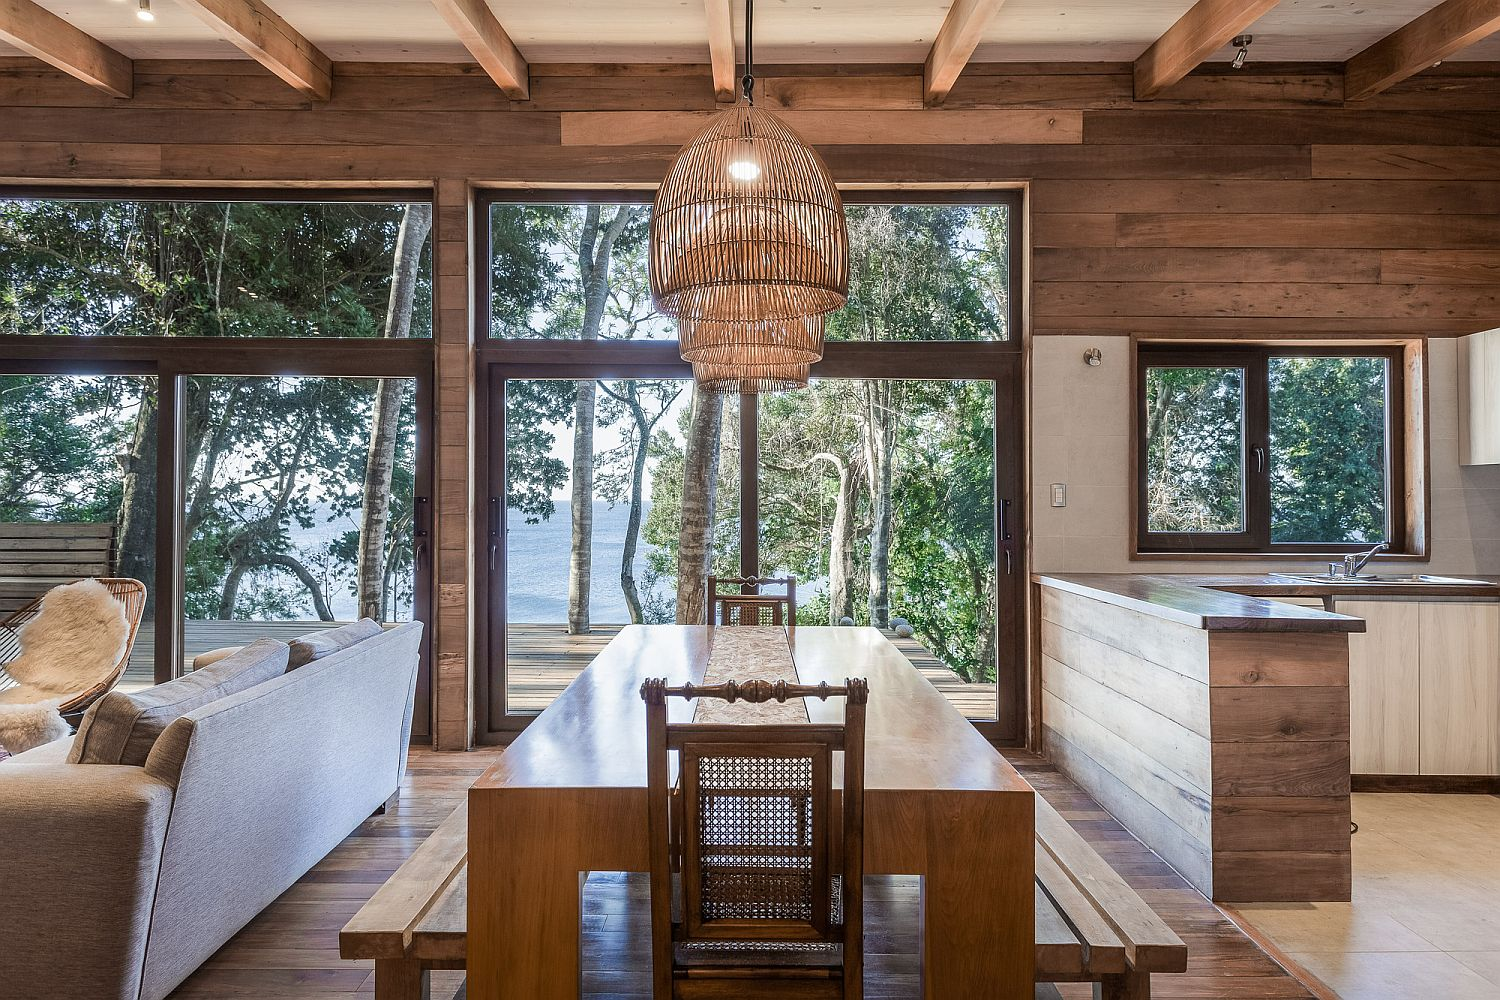 Amazing-array-of-wooden-surfaces-take-over-inside-the-Chilean-home